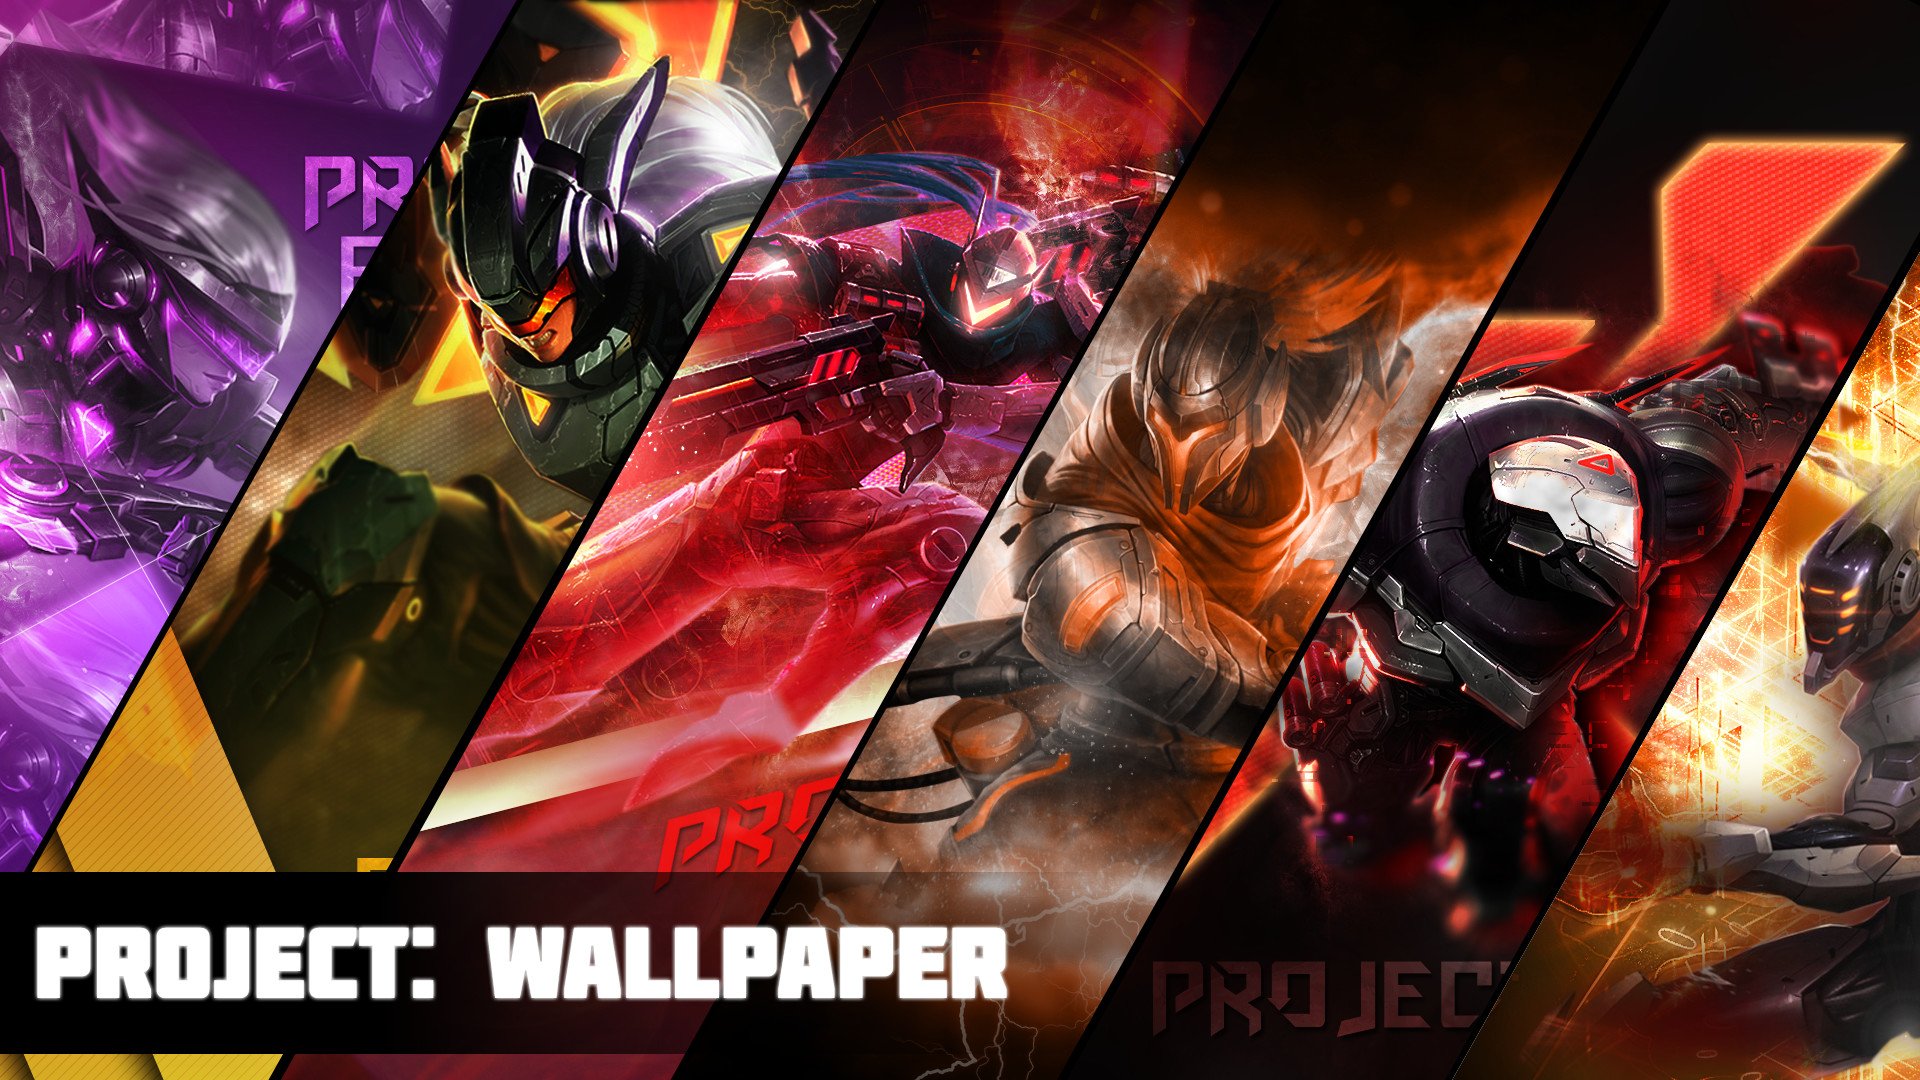 1920x1080 Project: Wallpaper by Xael-Design